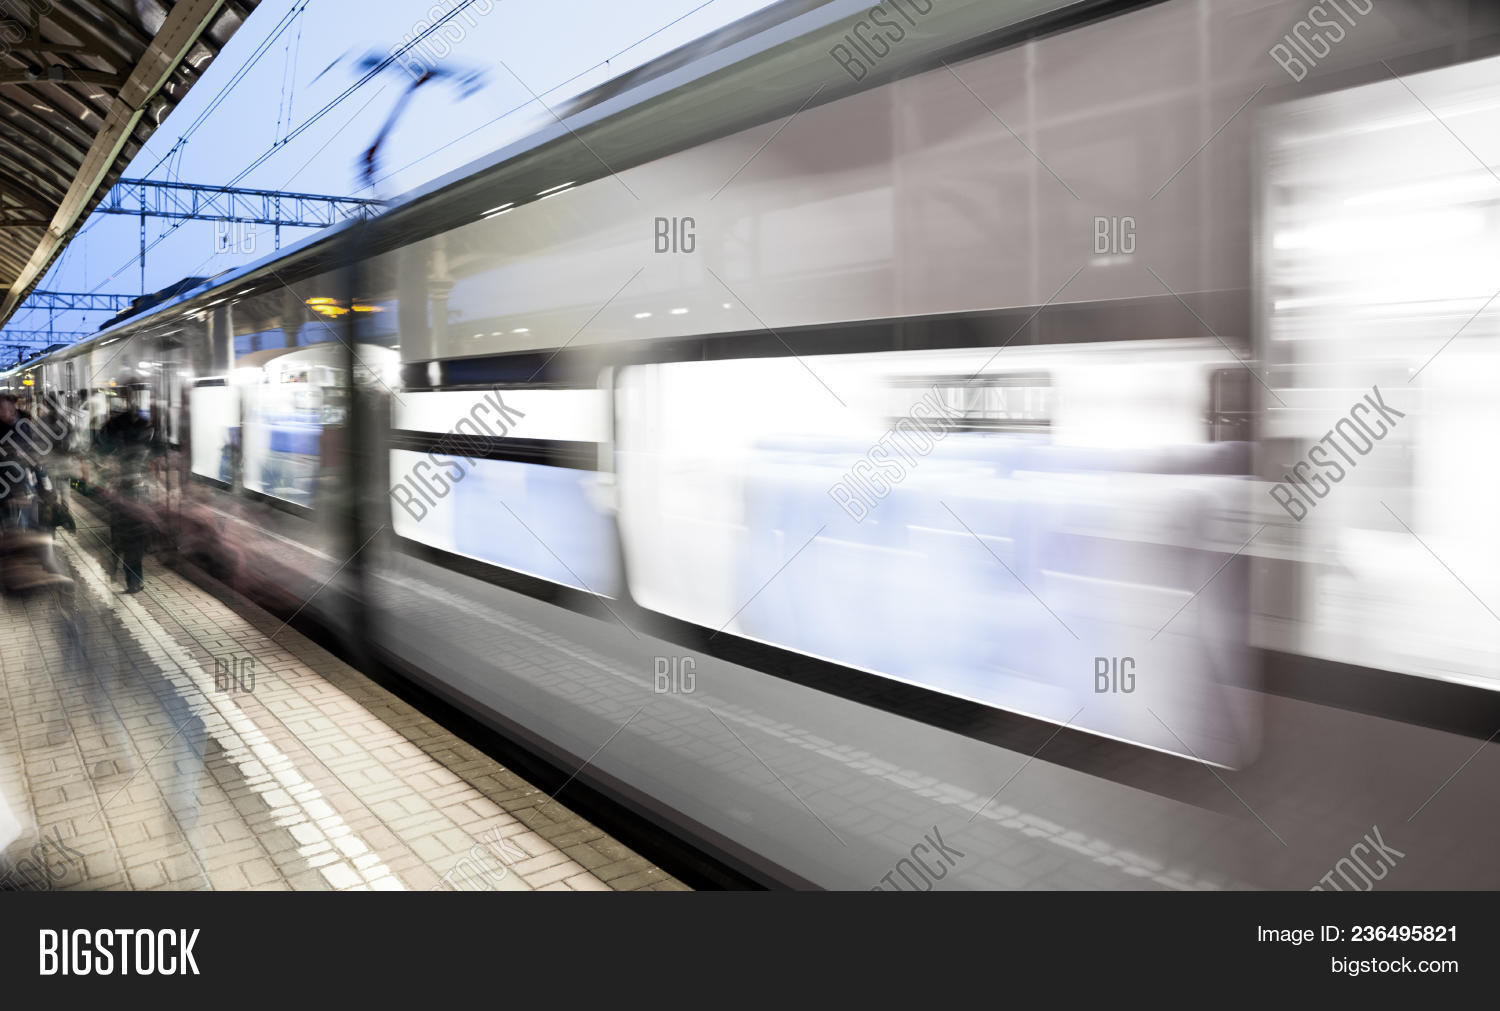 arrival,blur,business,cargo,carriage,city,commute,departure,diesel,electric,engine,express,fast,high,journey,locomotive,metro,modern,motion,move,movement,passage,passenger,people,perspective,platform,public,rail,railroad,railway,rapid,road,route,speed,station,subway,technology,track,traffic,train,transit,transport,transportation,travel,trip,underground,urban,vehicle,wagon,way